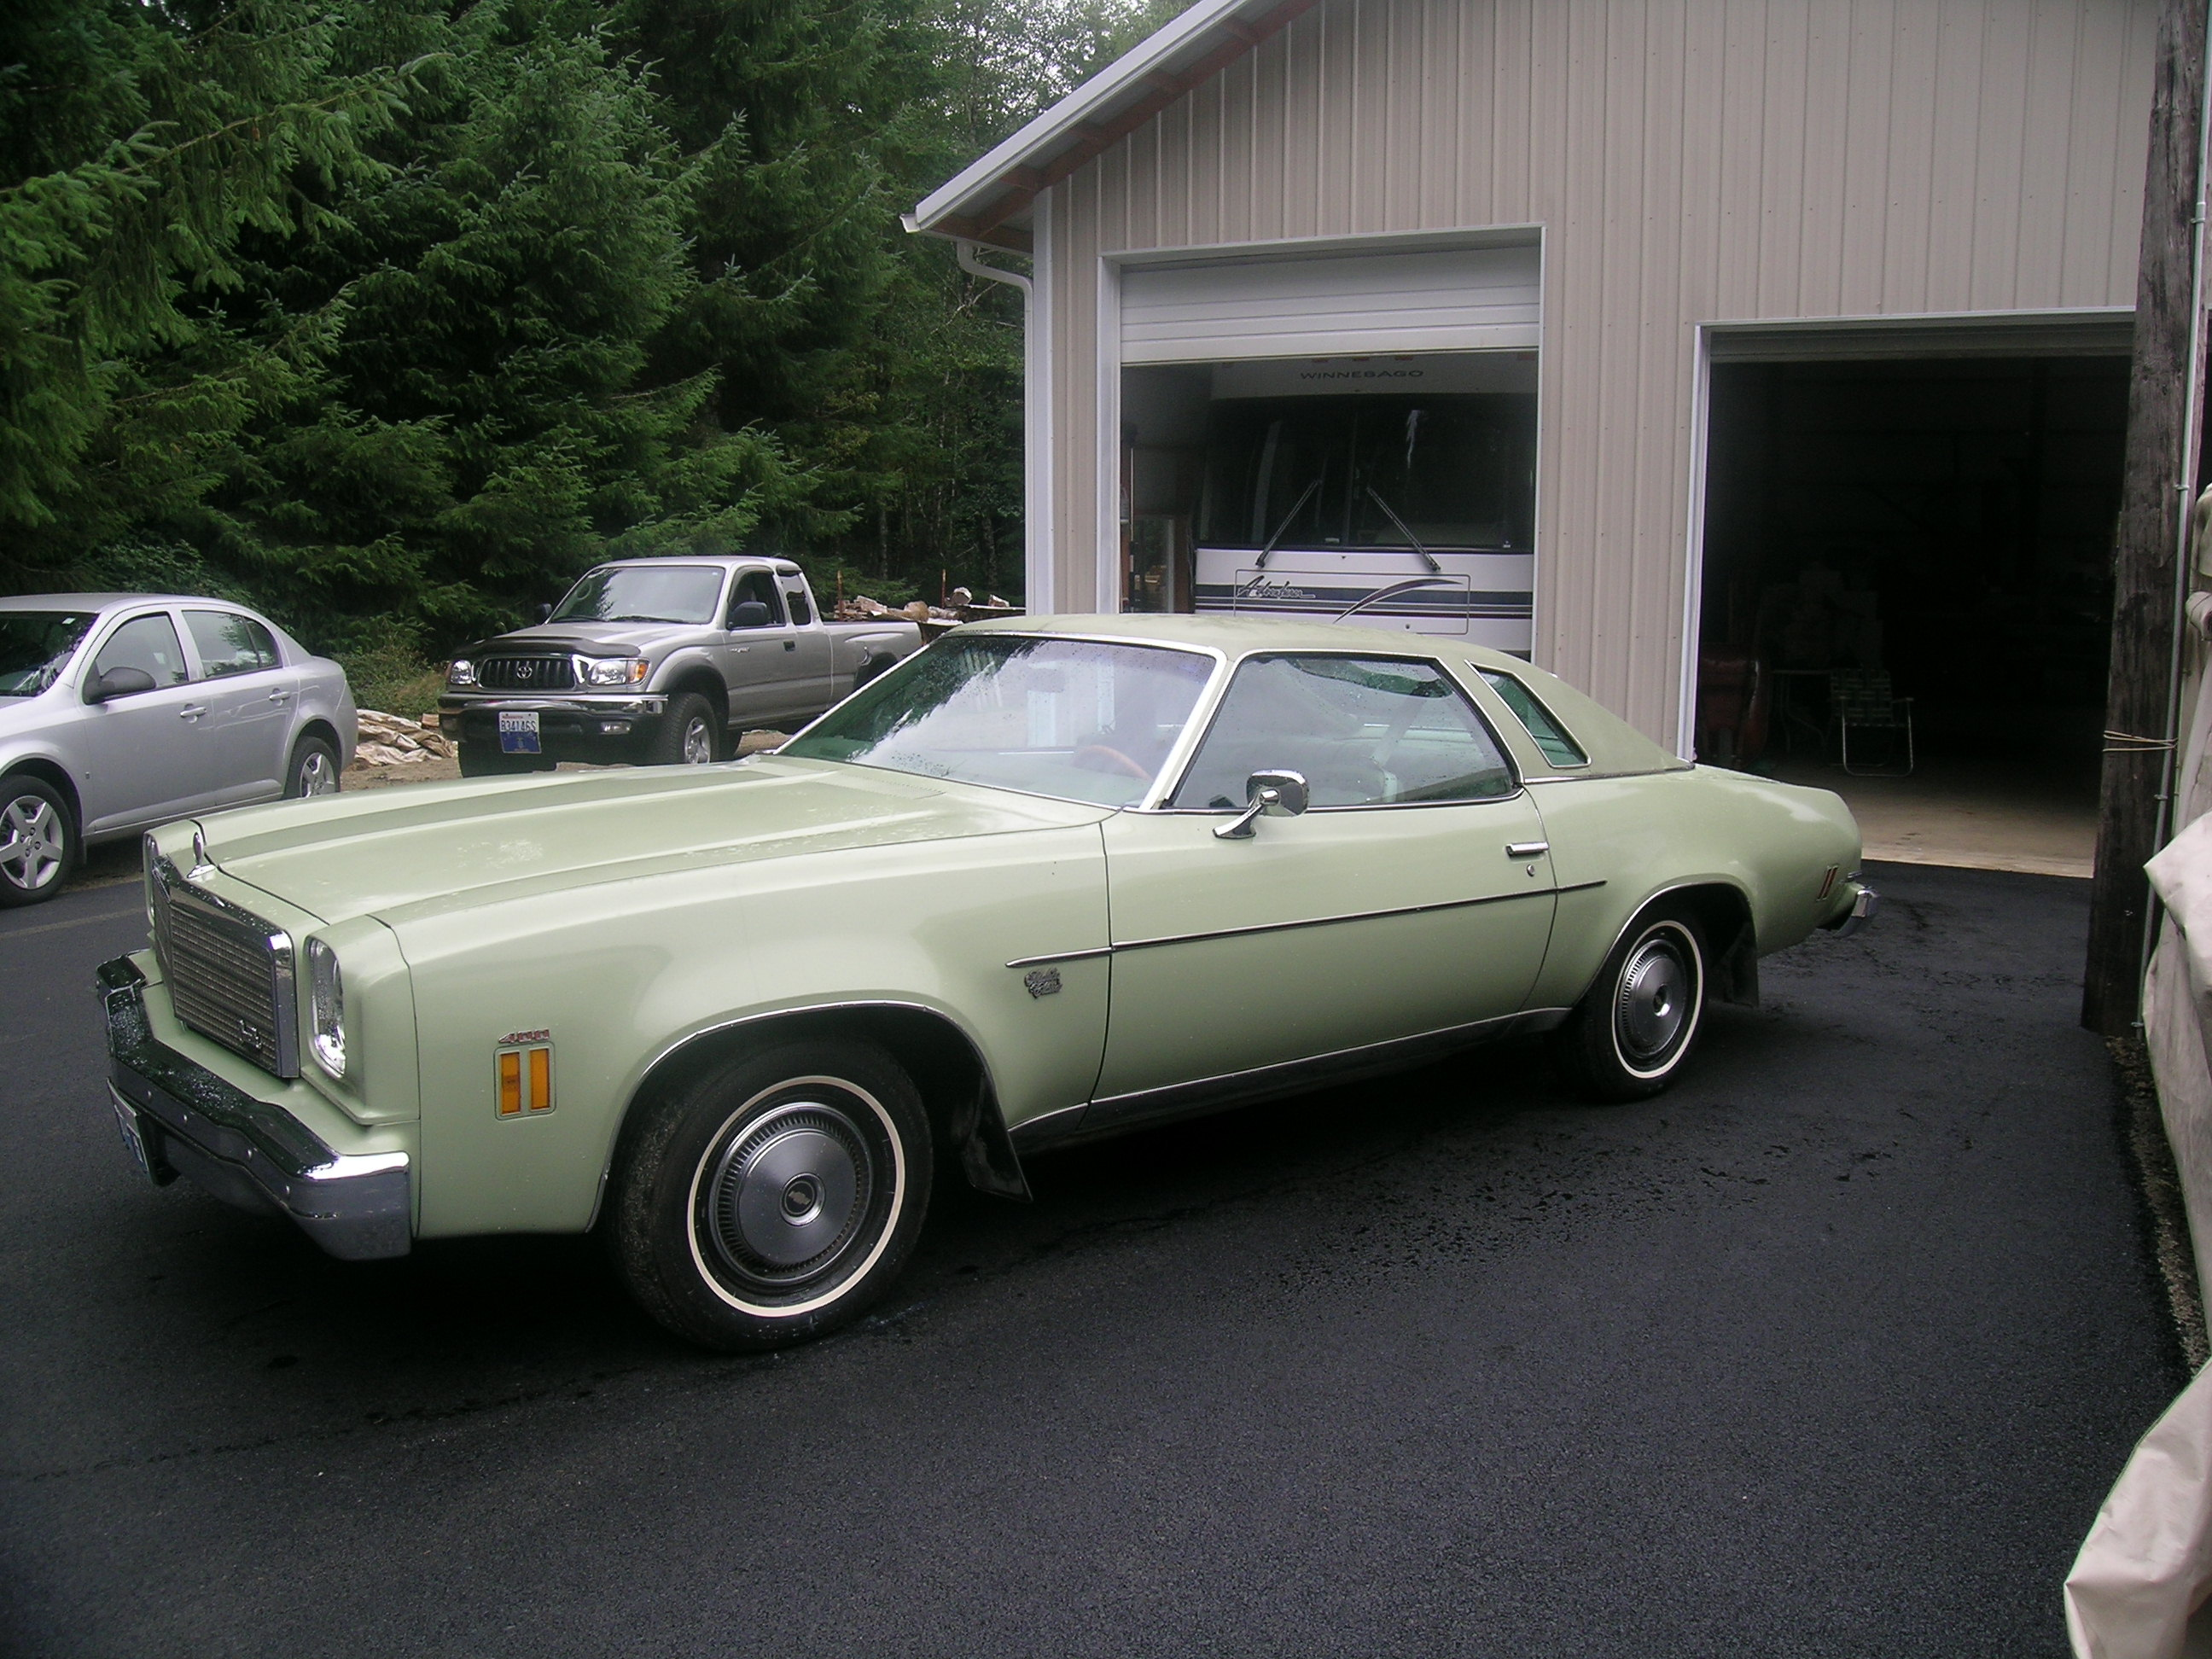 1974 Chevrolet Malibu Classic Information And Photos